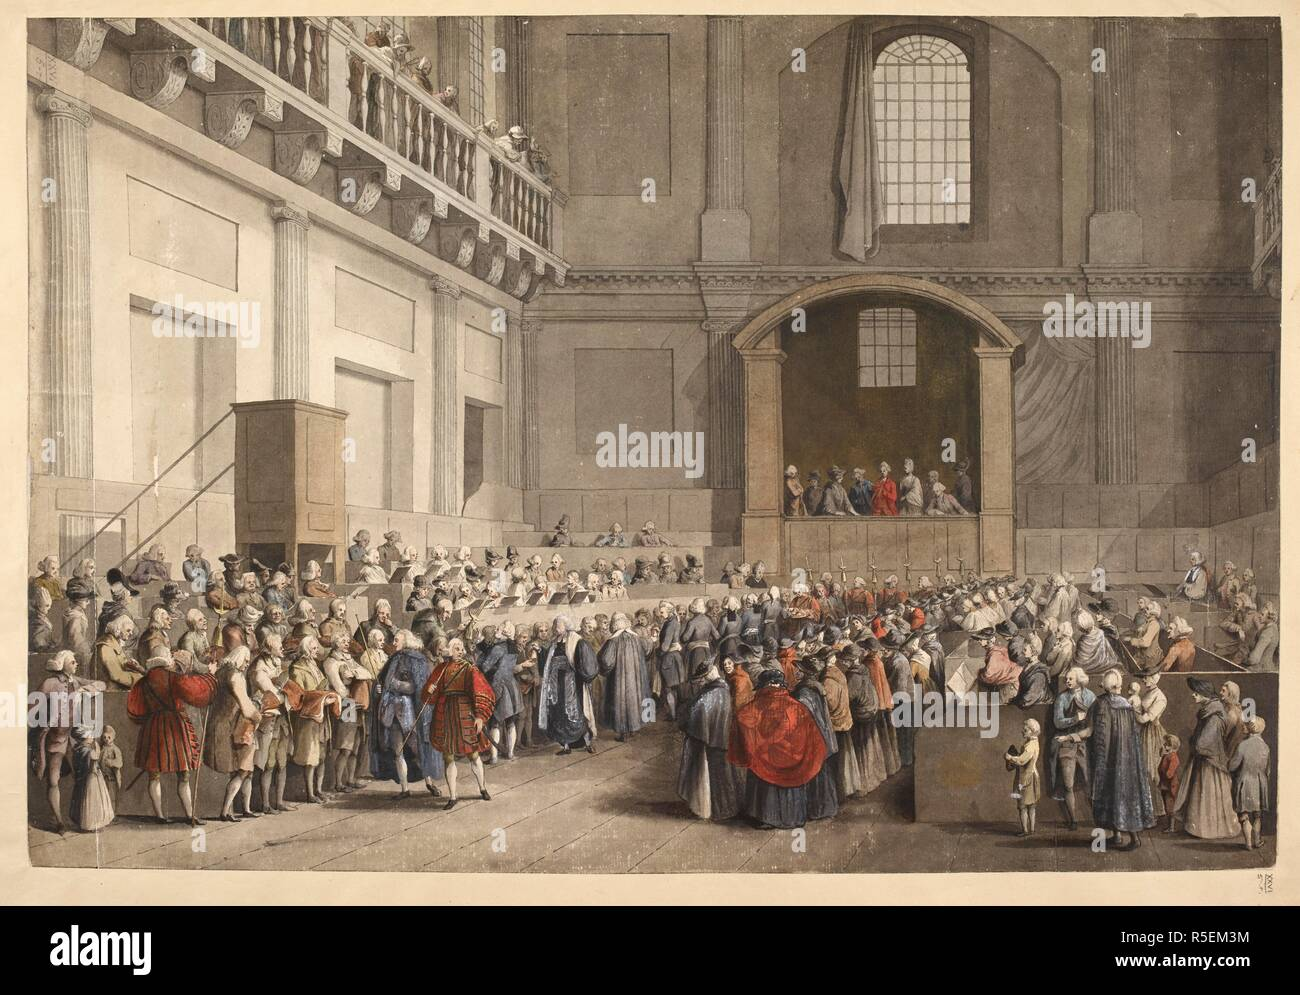 The Maundy Service in the Banqueting House, Whitehall. The interior of the Chapel Royal with George III and Charlotte watching from the royal box as the poor line up to receive charity; men on the left and women on the right; members of the congregation in pews on the right and the choir on the left. . A colored view of the distribution of his Majesty' Maundy by the sub-almoner, in the Chapel Royal, at Whitehall. London, 1773. Source: Maps.K.Top.26.5.r. Author: Grimm, Samuel Hieronymous. Stock Photo